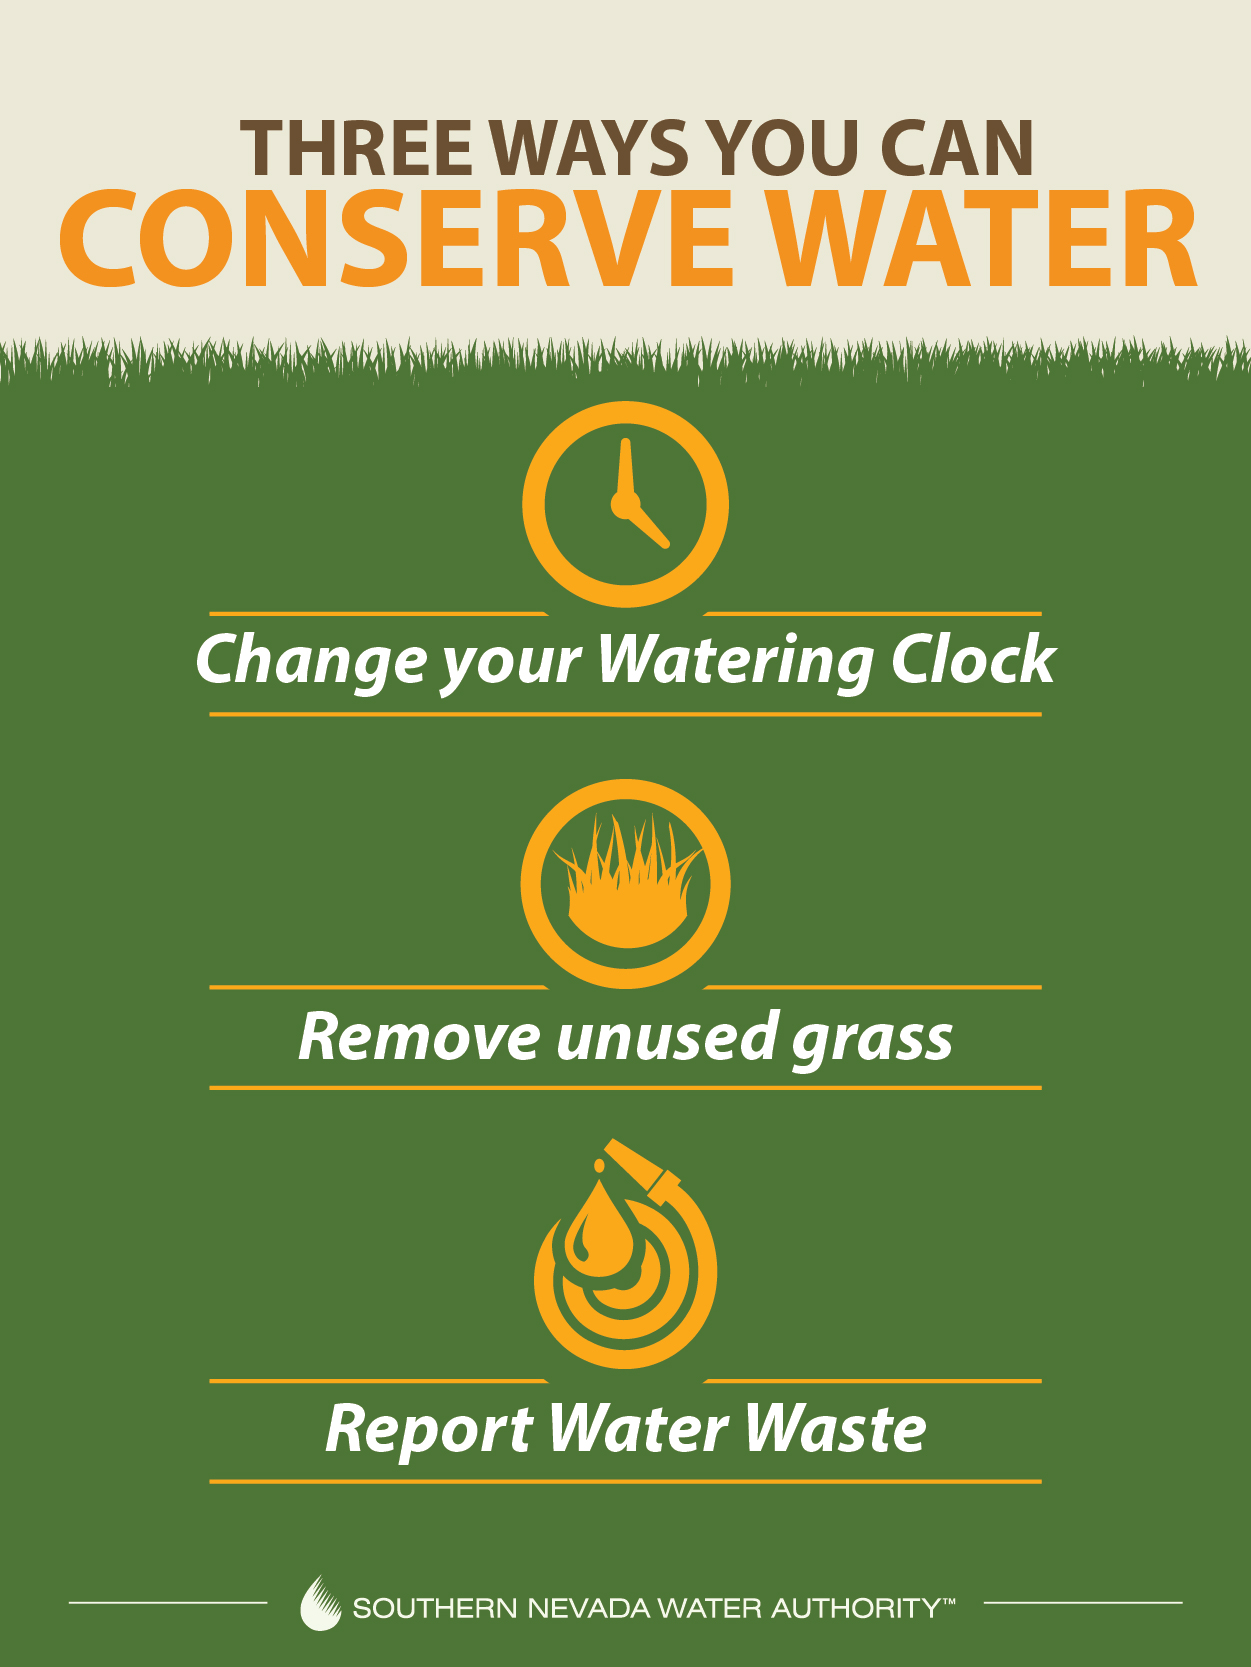 A graphic directing readers to conserve water by changing their clock, removing unused grass, and reporting water waste